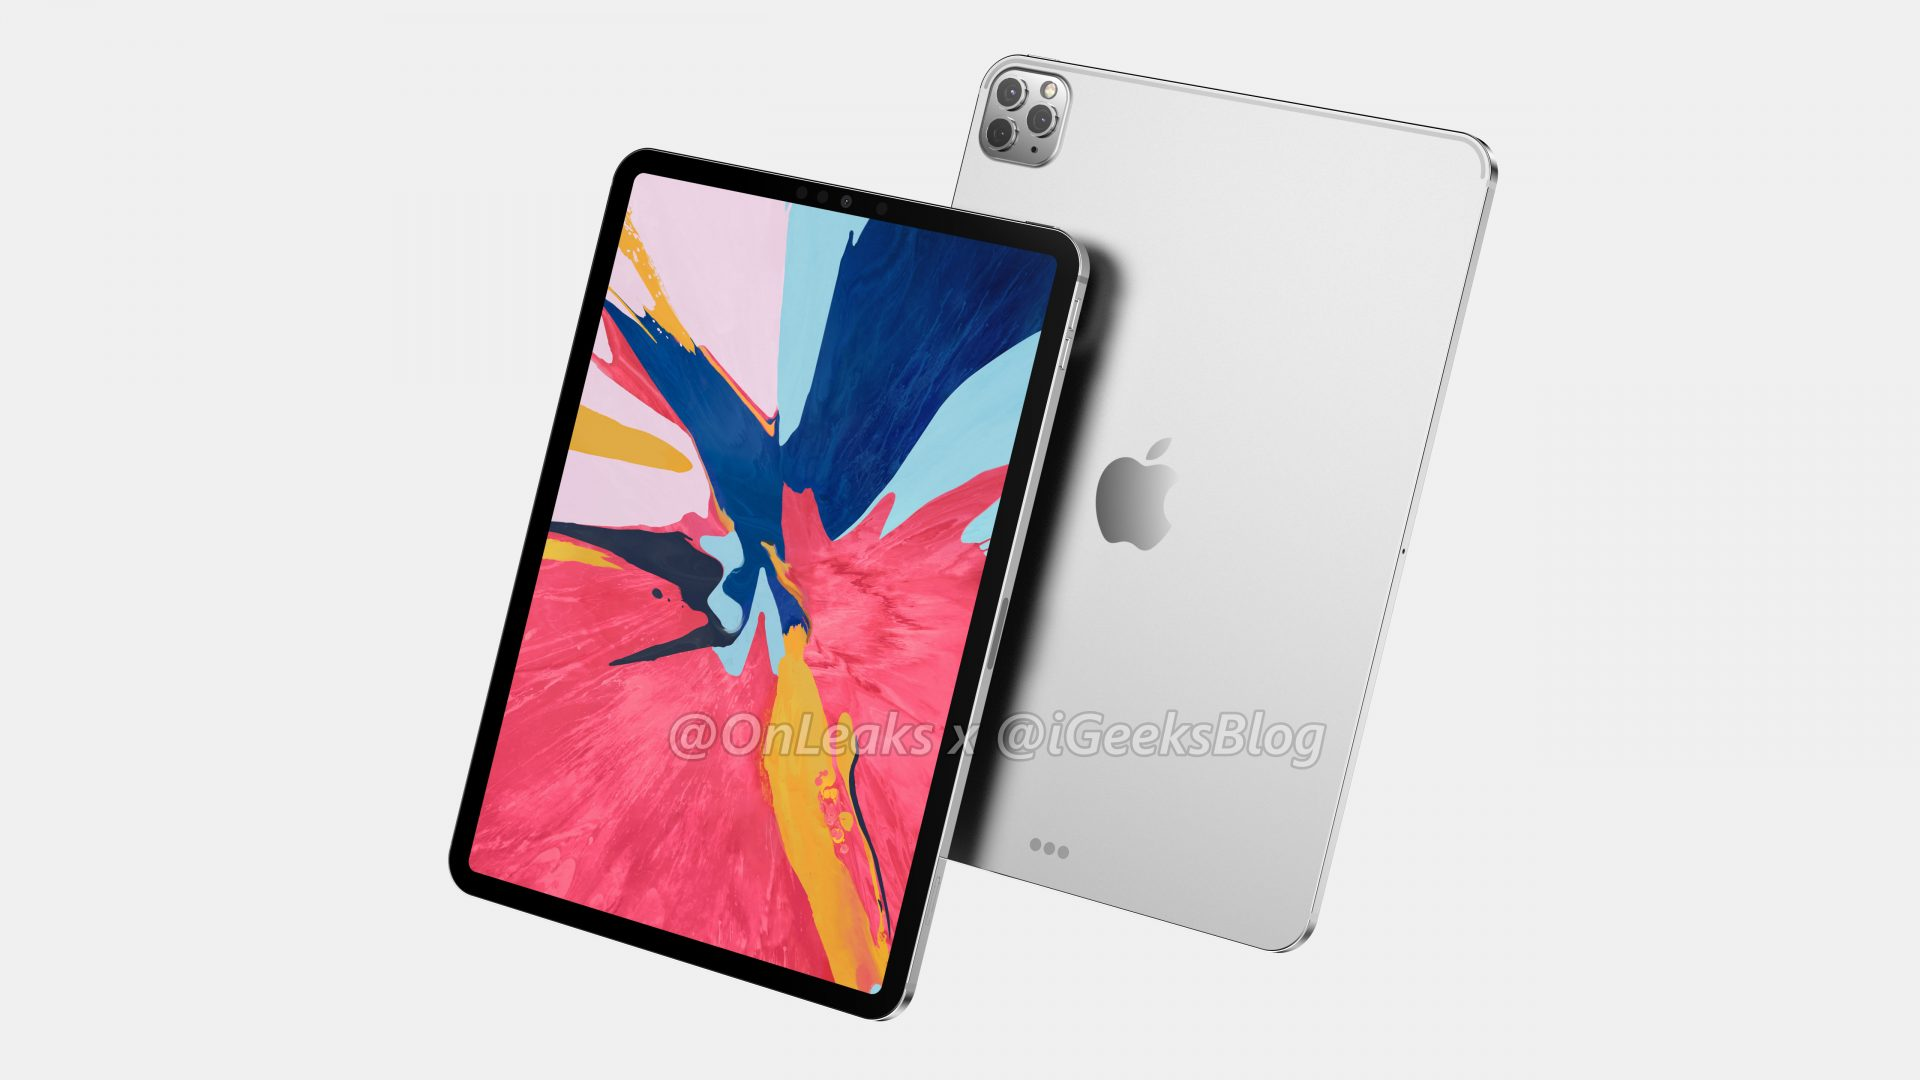 Renders and video of the 2020 iPad Pro leak online 2